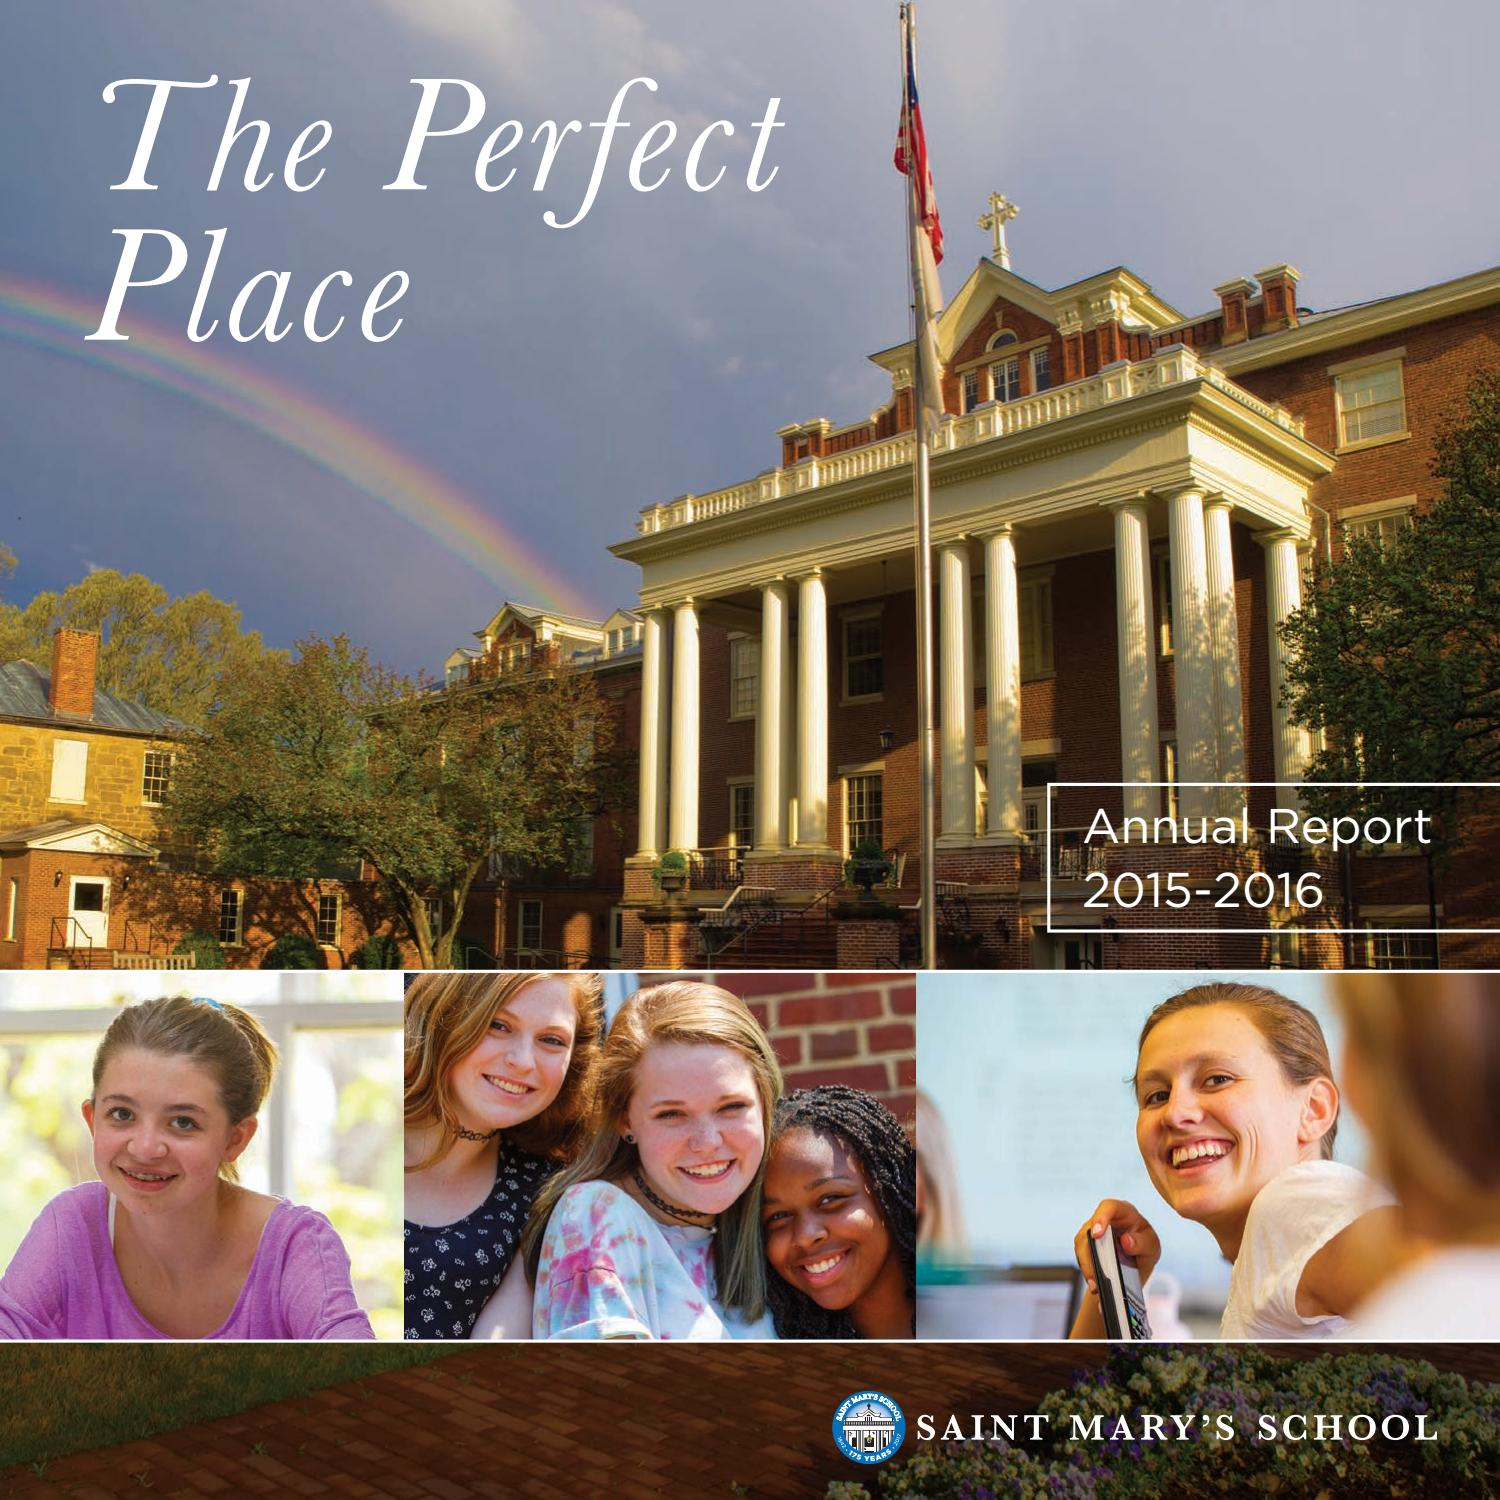 Ina Mae Spivey Top saint mary's school annual report | 2015-2016saint mary's